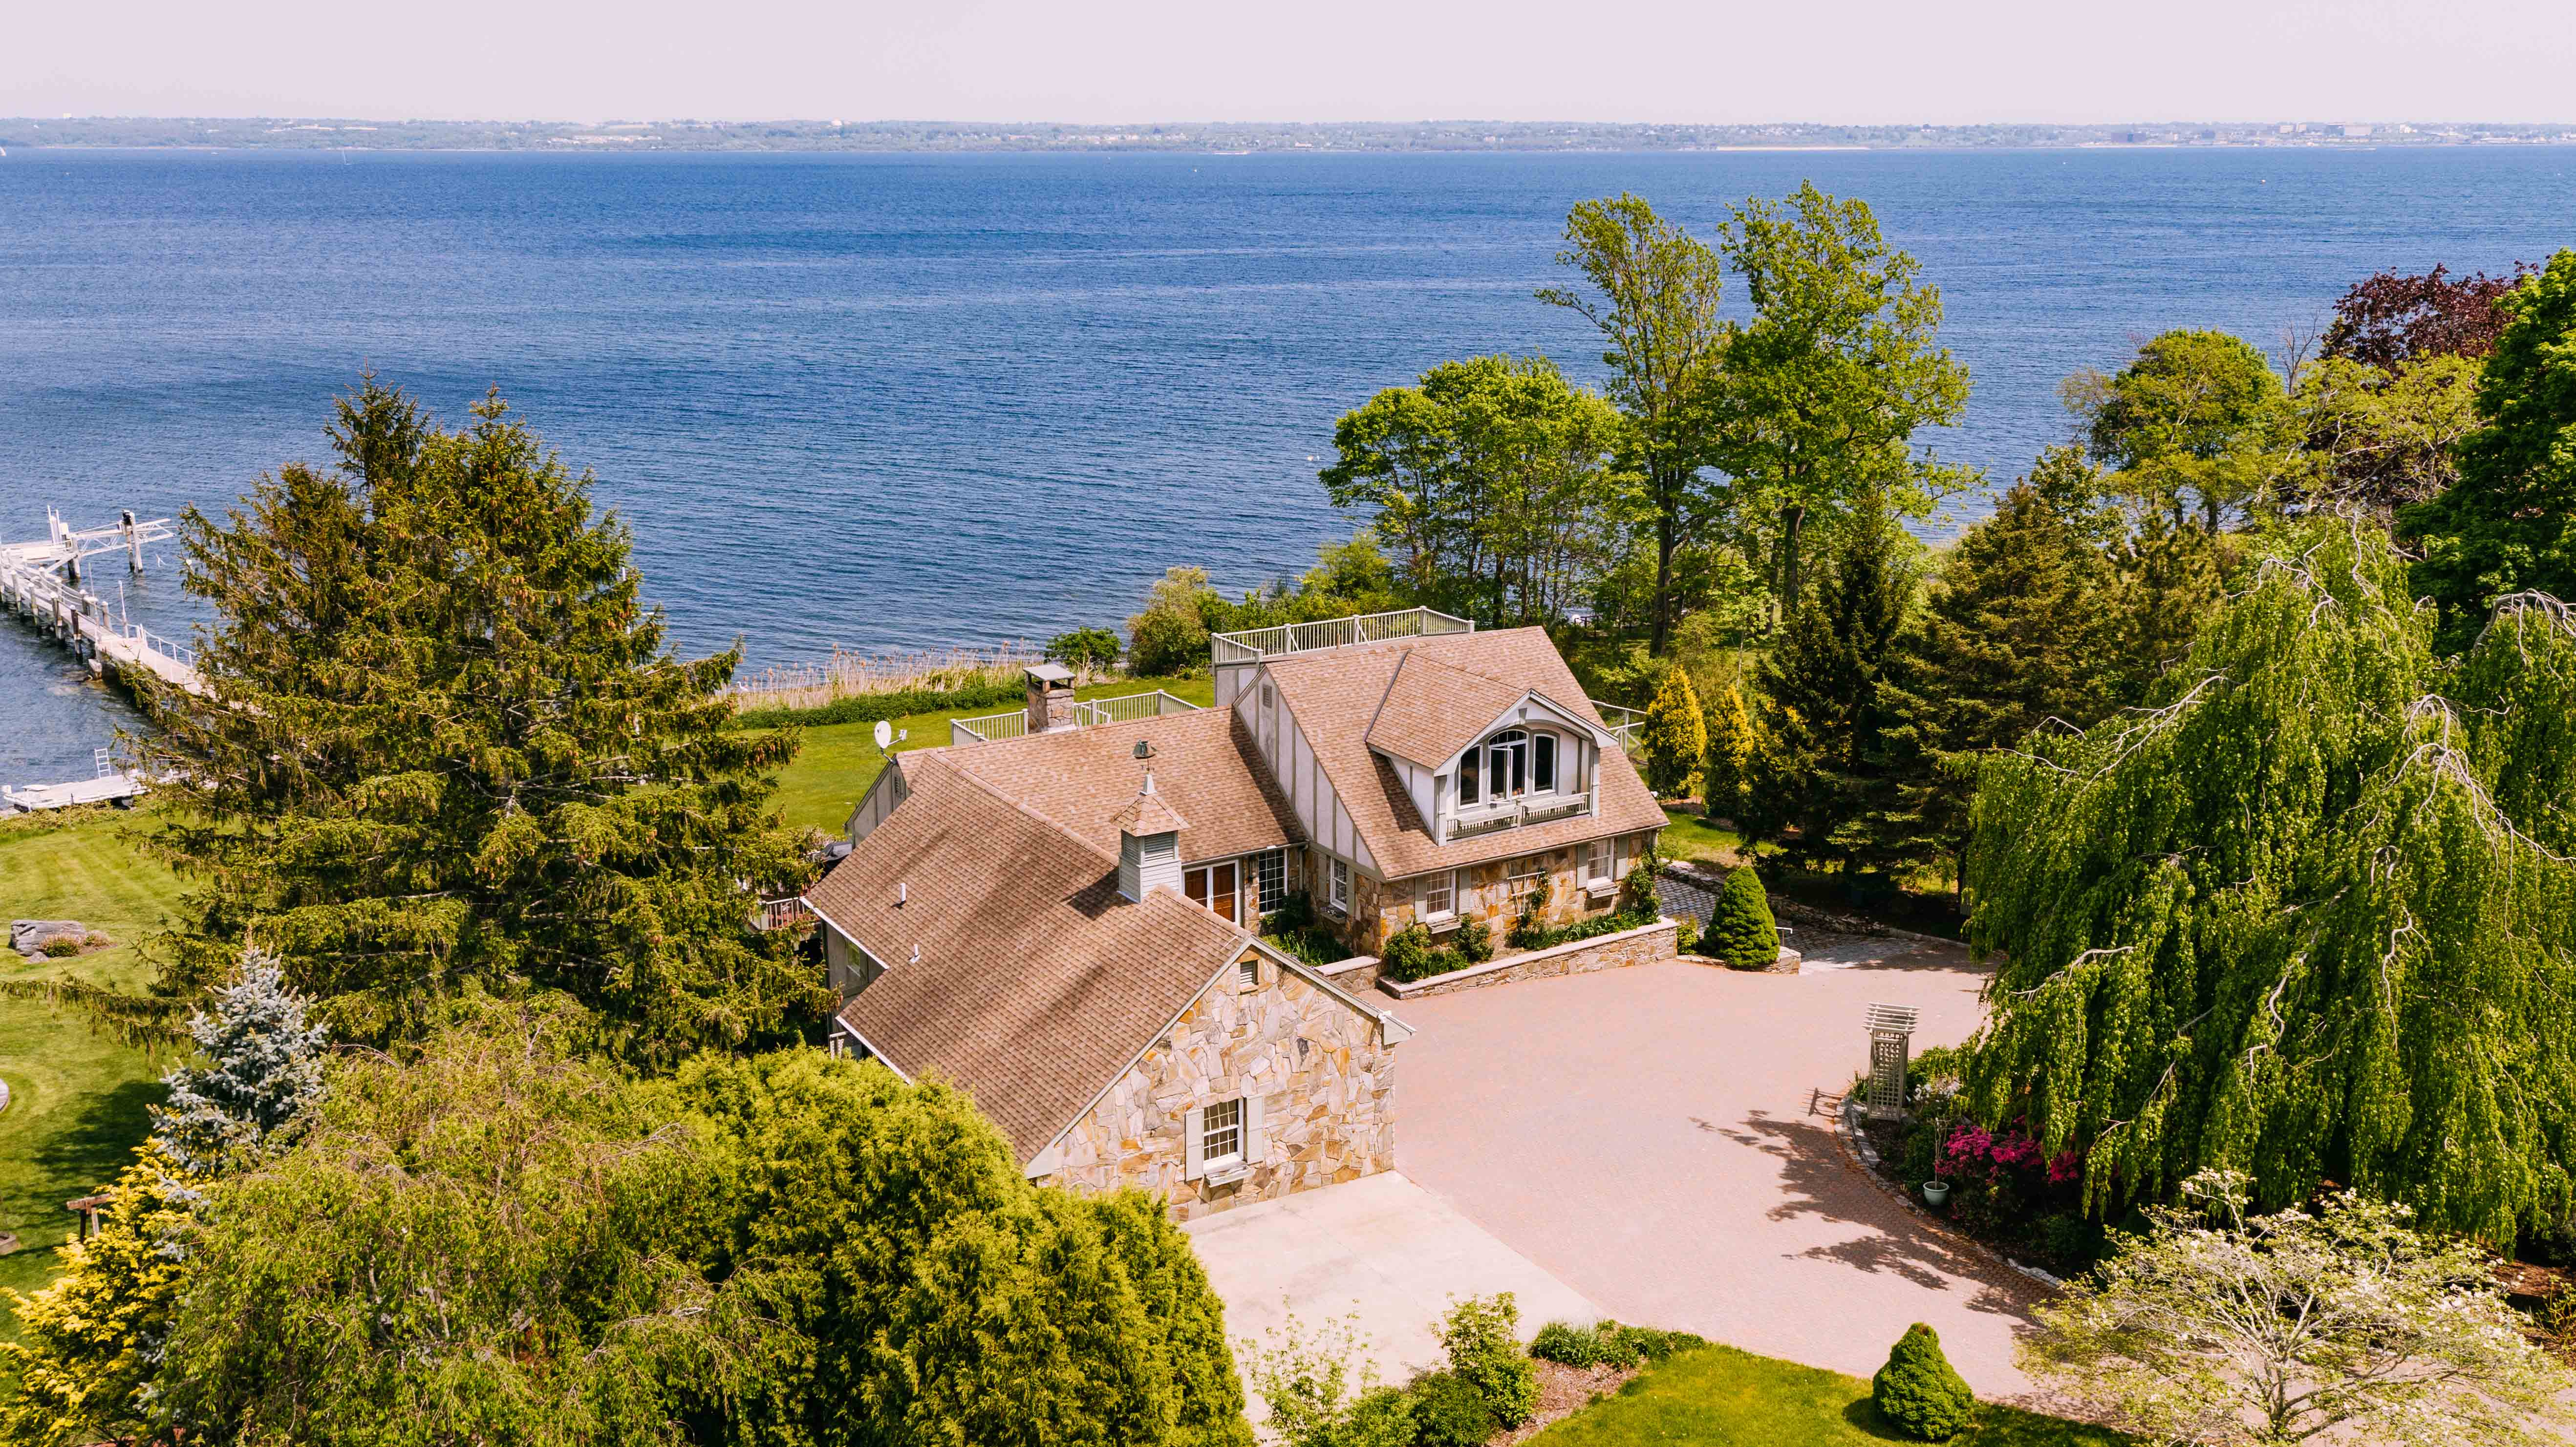 WATERFRONT CONTEMPORARY TUDOR ON JAMESTOWN'S EAST SHORE ROAD SELLS FOR $2.35M